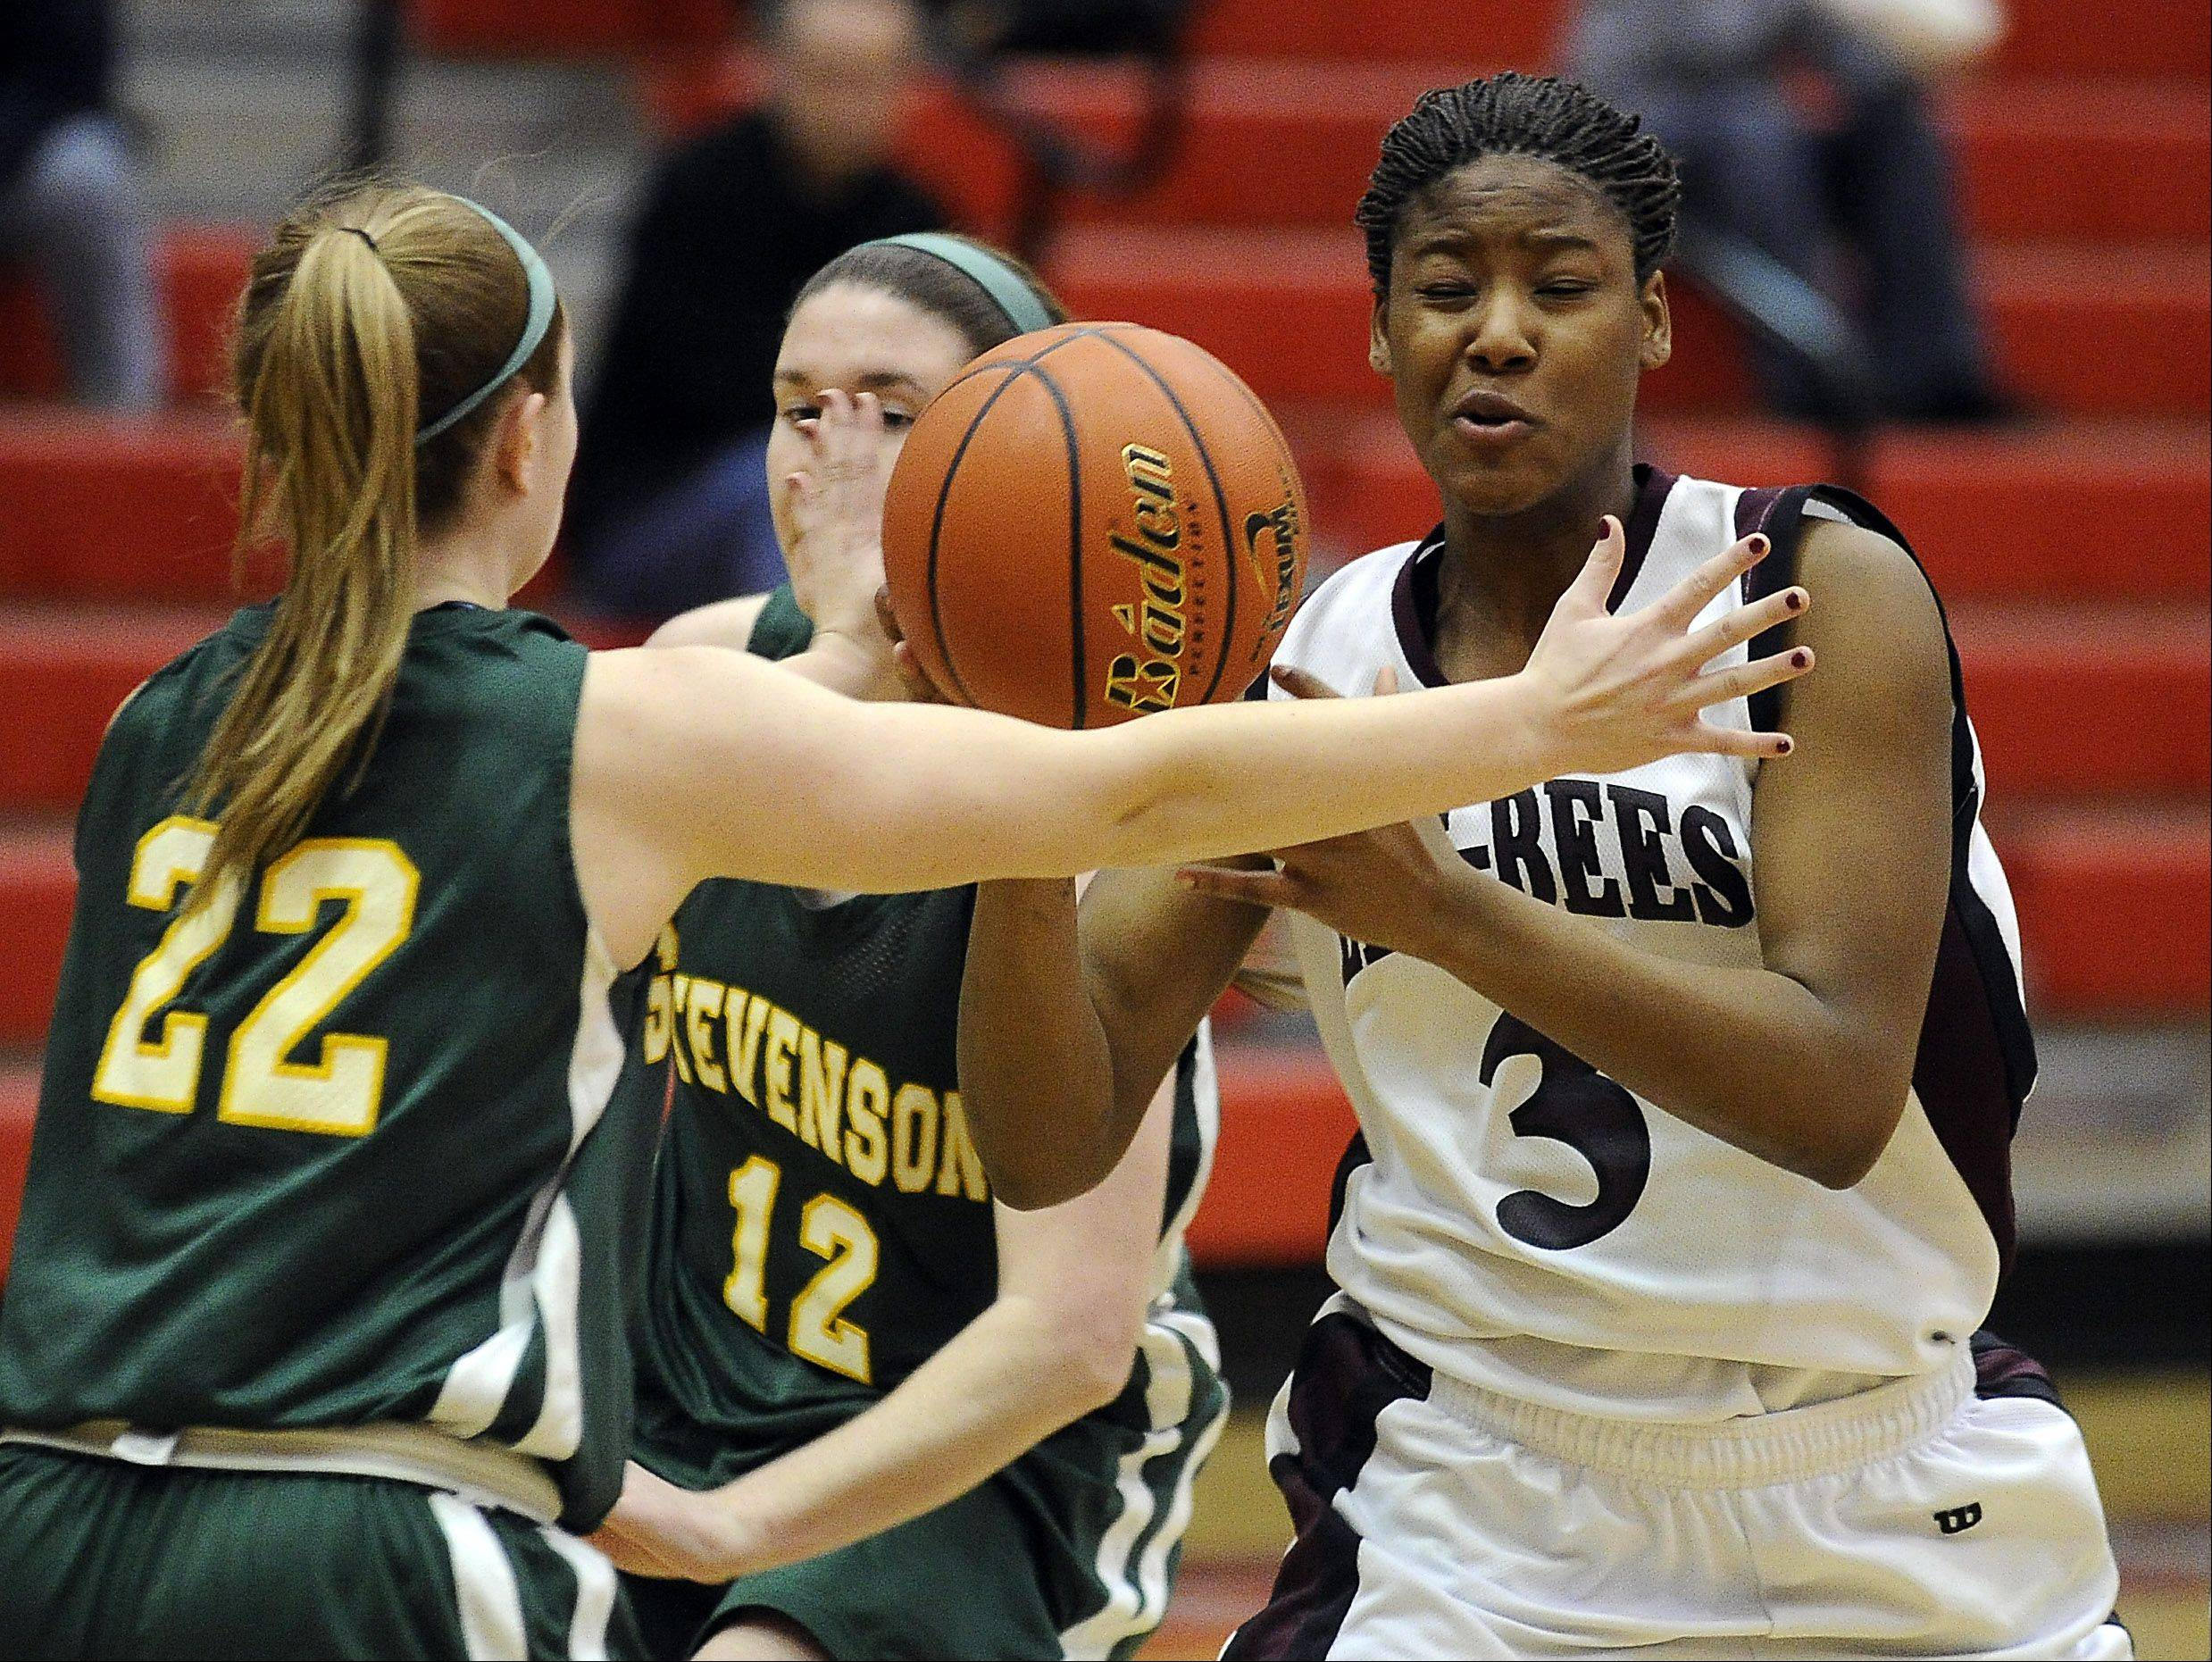 Stevenson's Katherine Moffat knocks the ball away from Zion-Benton's Octavia Crump in the first quarter.